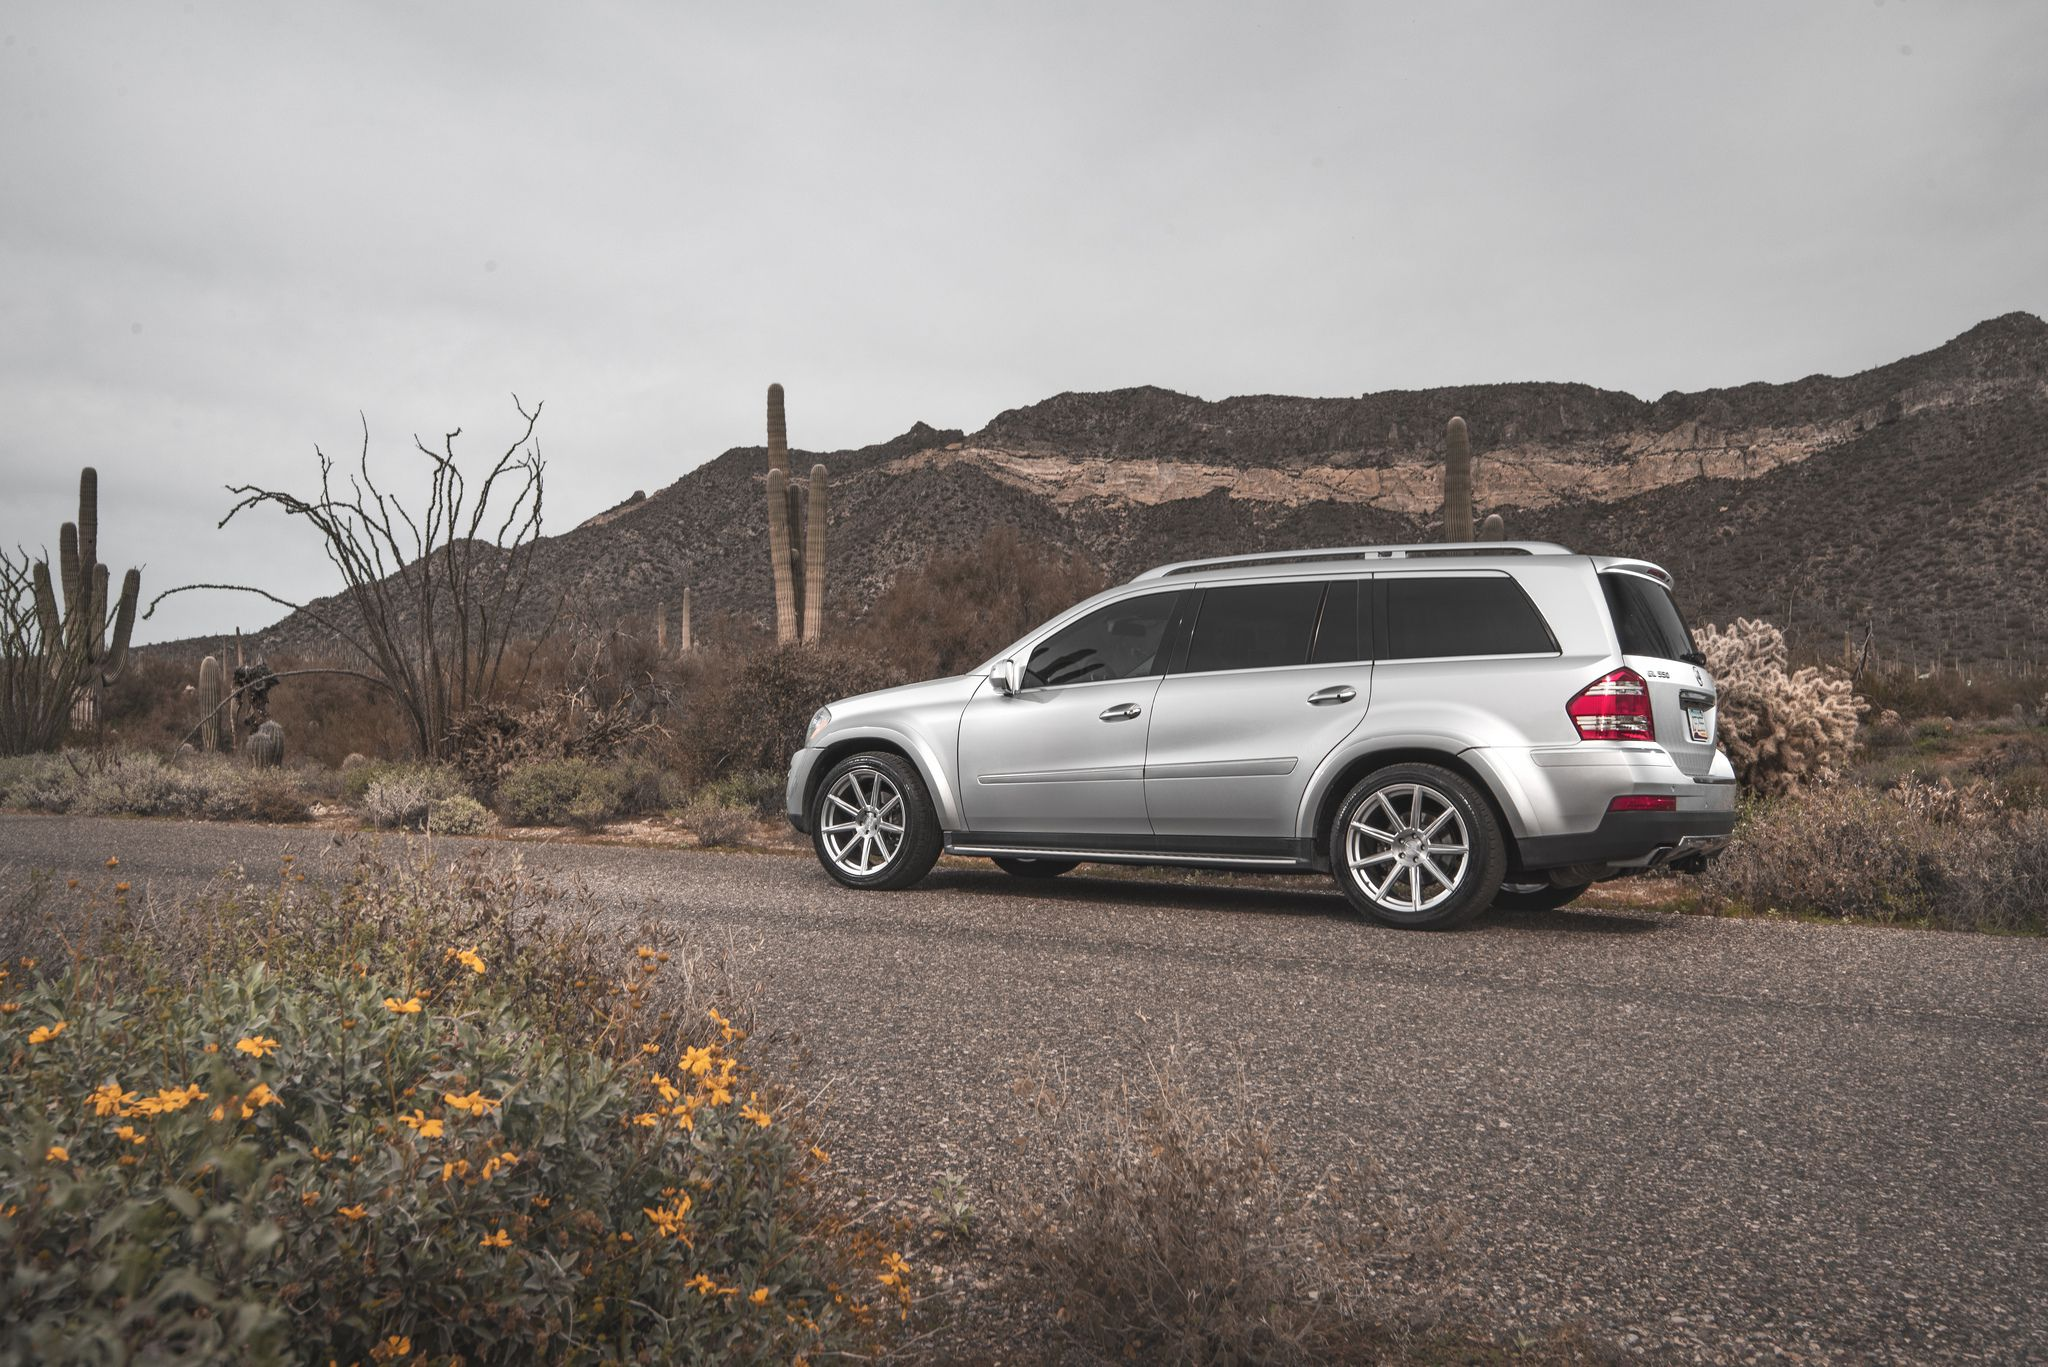 Mercedes GL 550 at mountains background